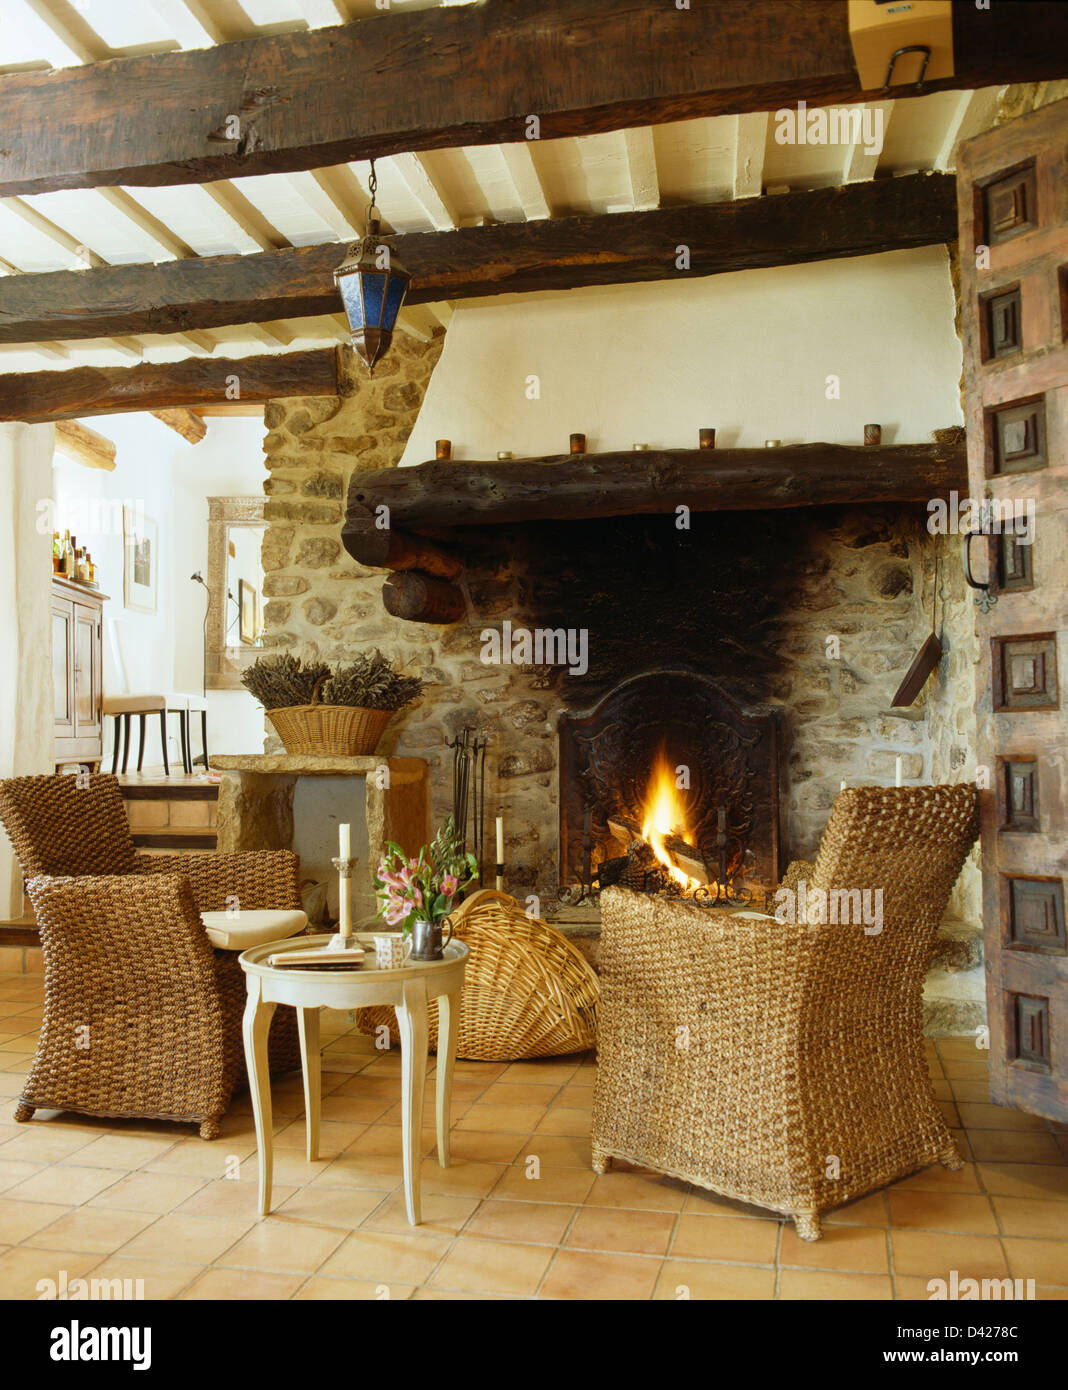 images of small country living rooms linda 3 piece leather room set wicker armchairs and table in french with rustic beamed ceiling fireplace lighted fire